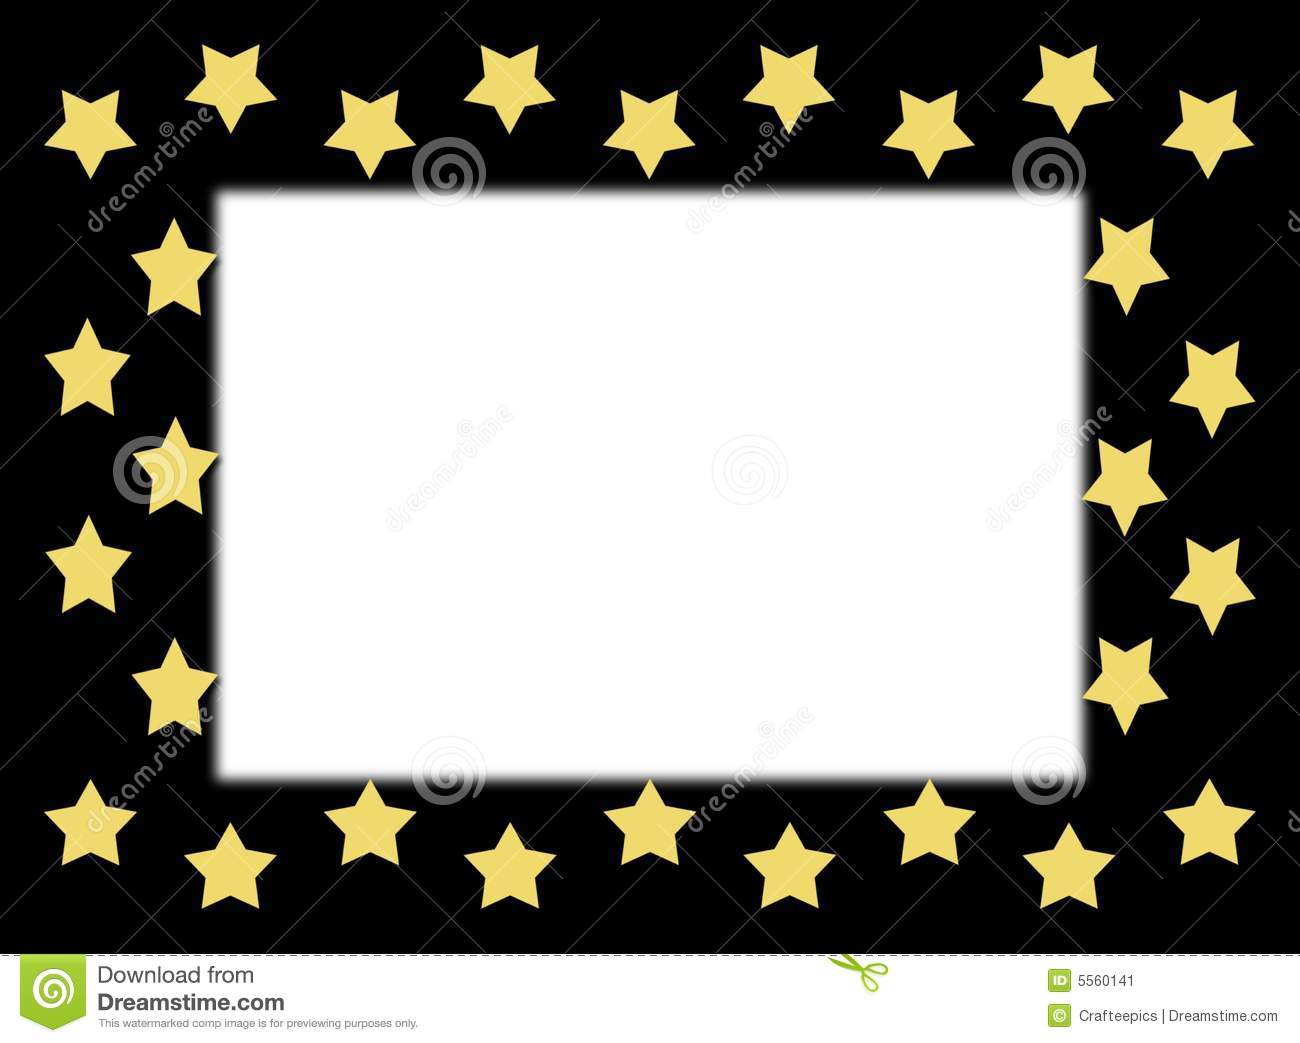 Gold Star Border Stock Image - Image: 5560141